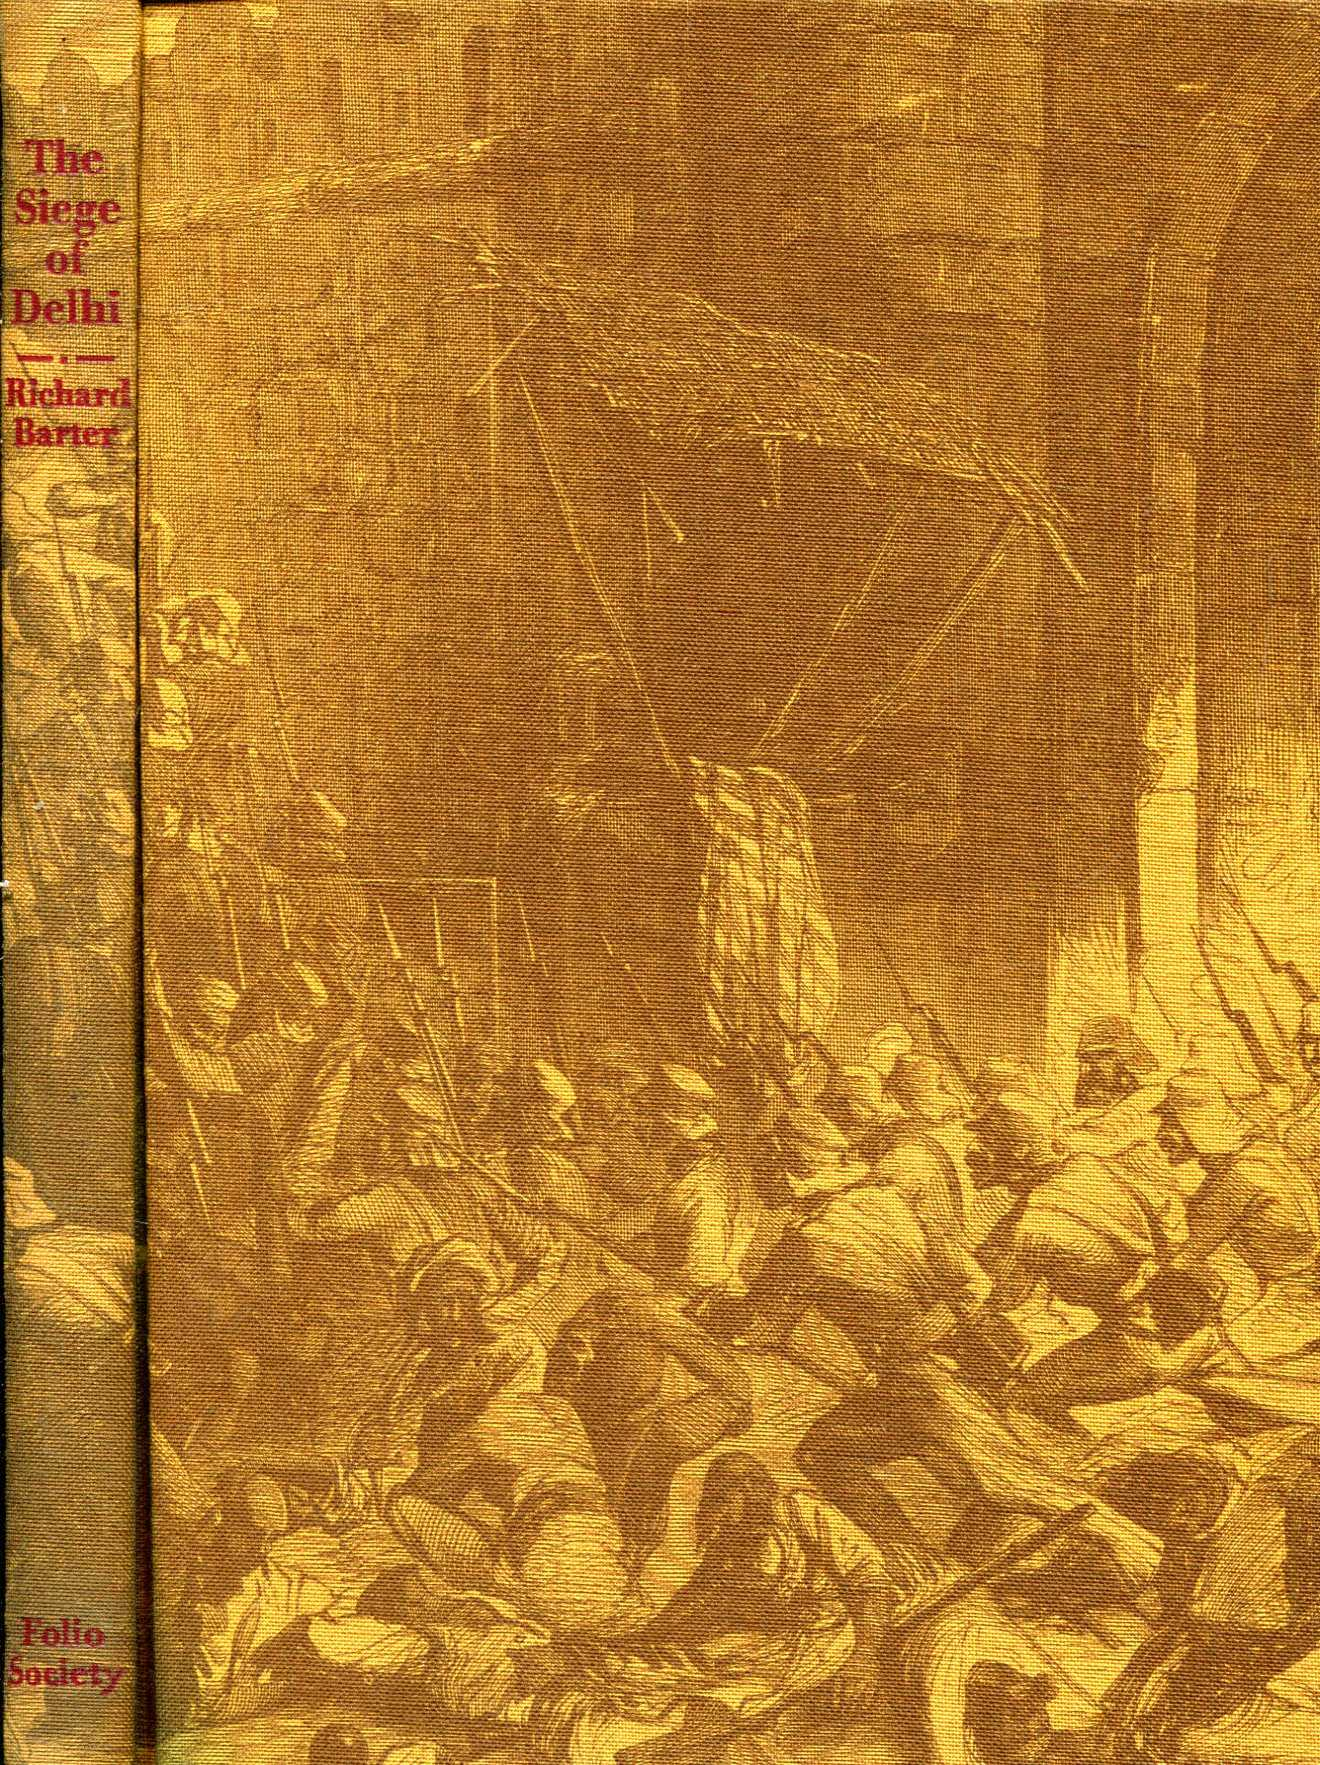 Image for The Siege of Delhi, mutiny memories of an Old Officer